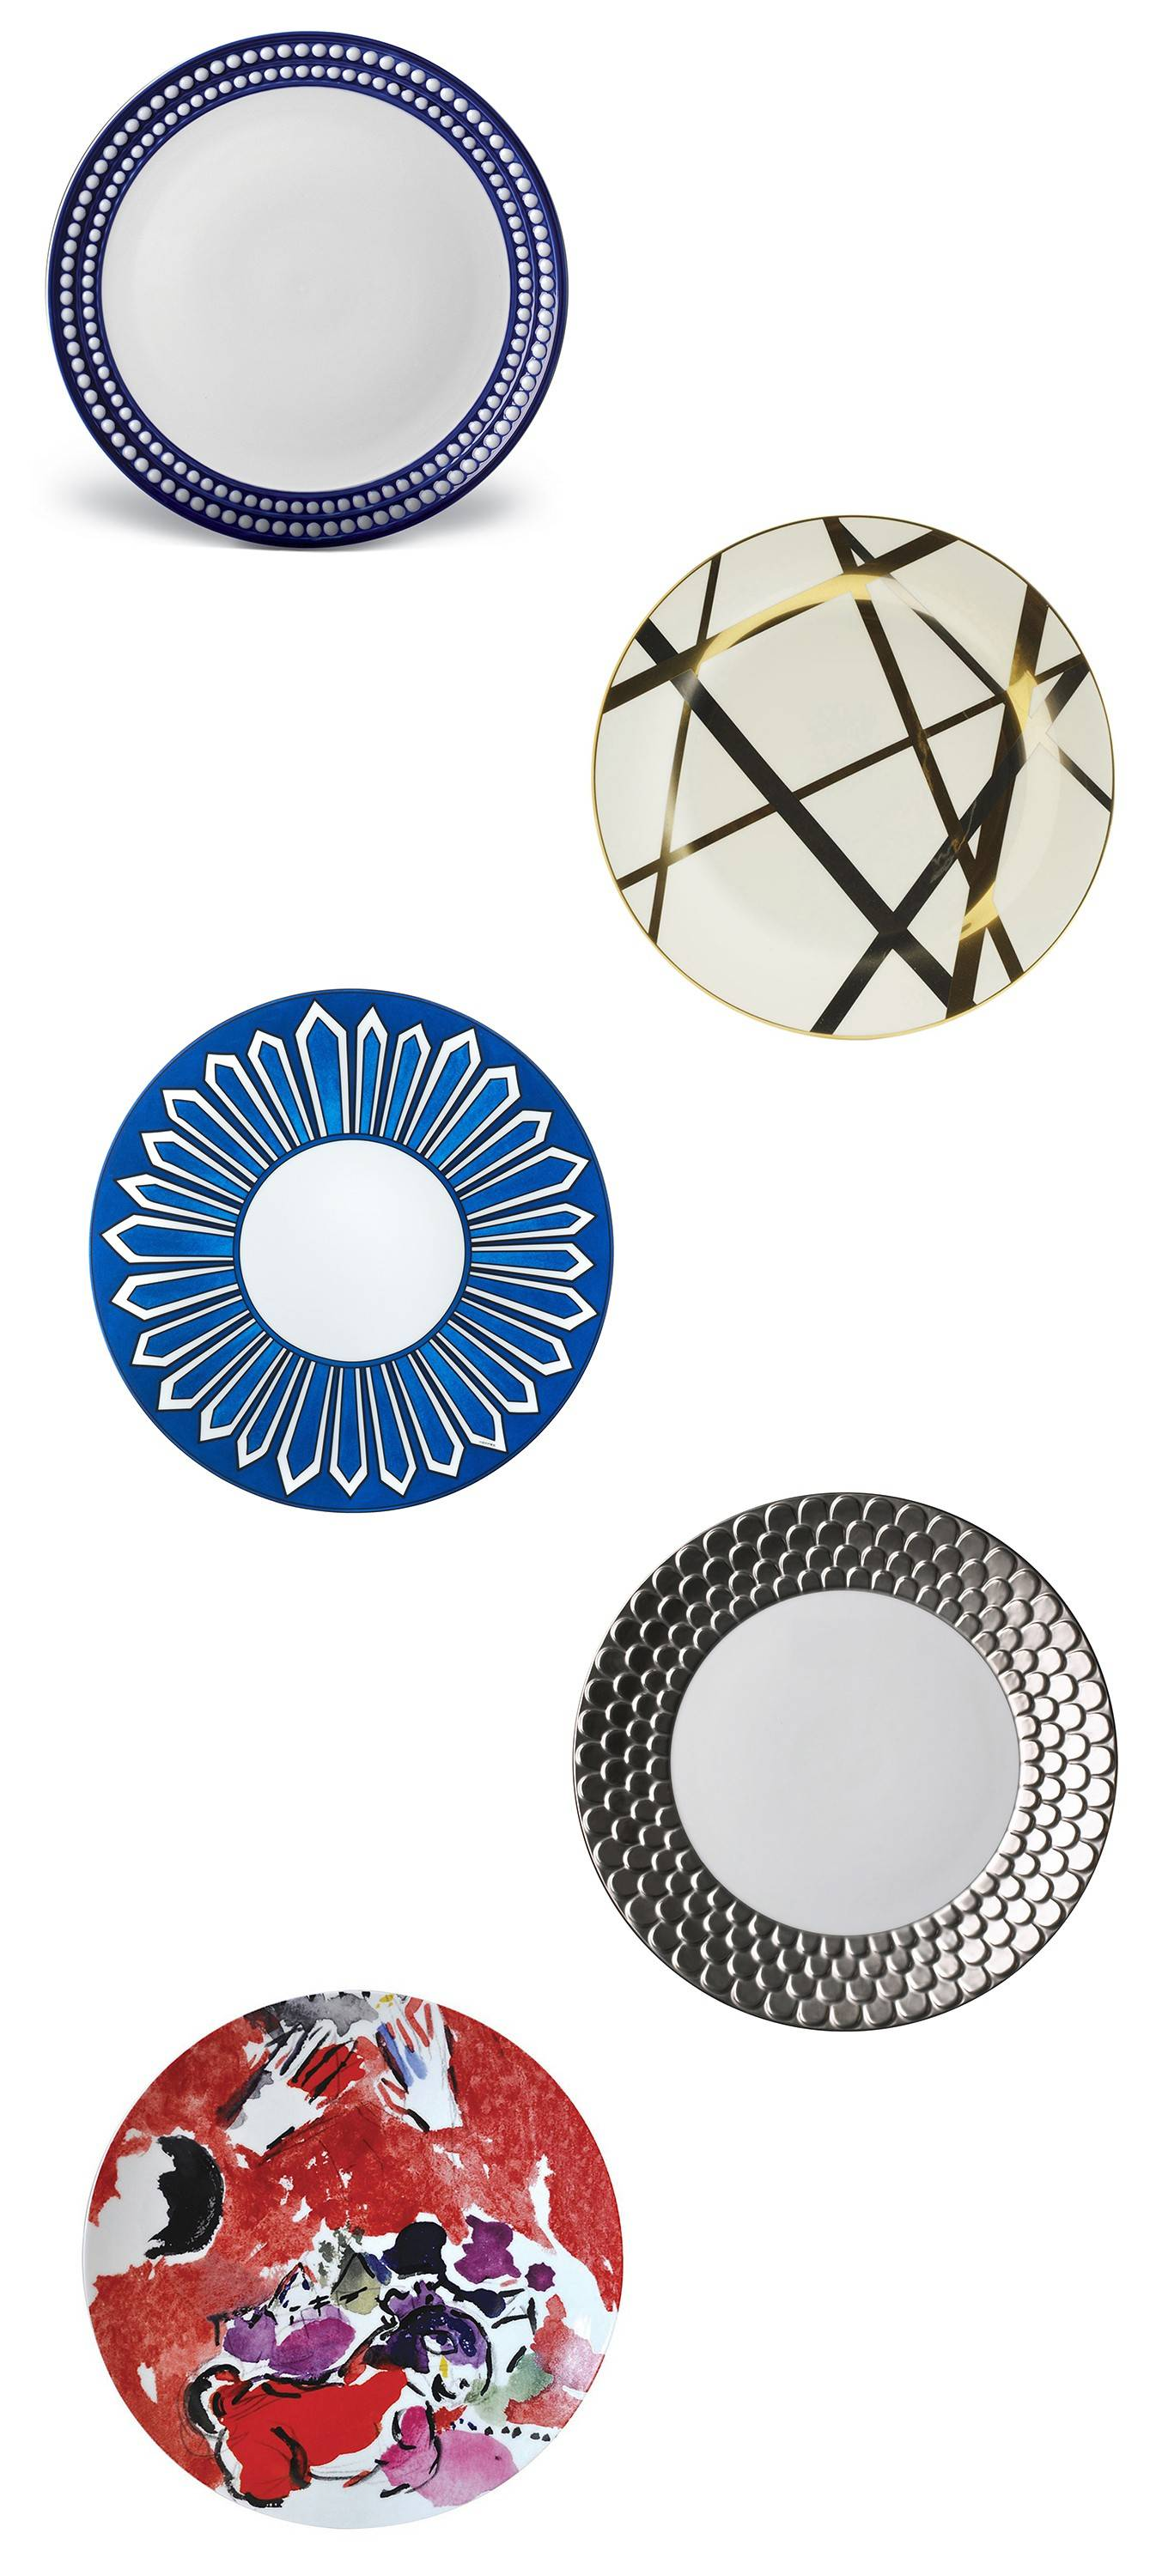 Today's dinnerware has much variety: gold and platinum edging, colorful patterns, squares and octagon shapes. From top to bottom: 6-Perlee Dinner Plate; 7-Pickard China's Mulholland dinner plate; Hermes' Bleus d'Ailleurs; Aegean Dinner Plate; Bernadaud dinner plate.